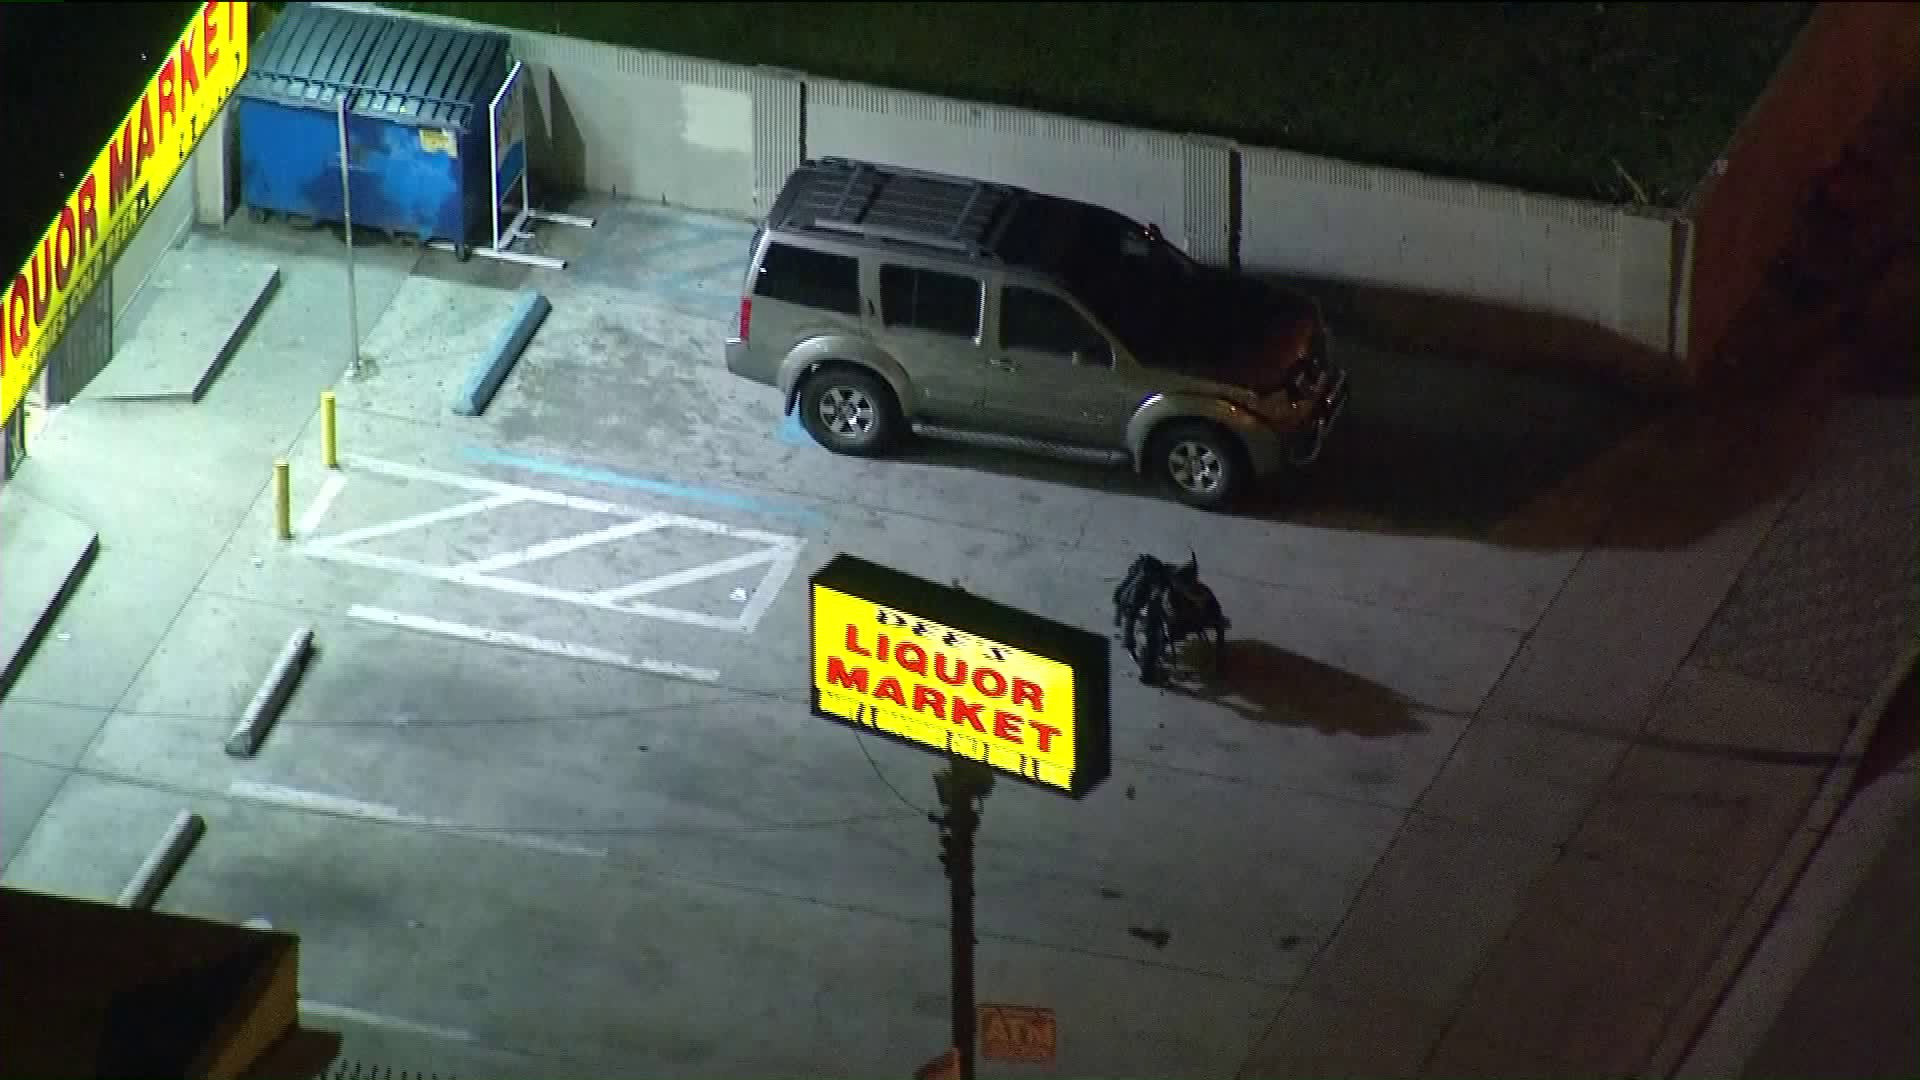 Three people were wounded, two of them critically, in a shooting in Willowbrook on March 8, 2019. (Credit: KTLA)